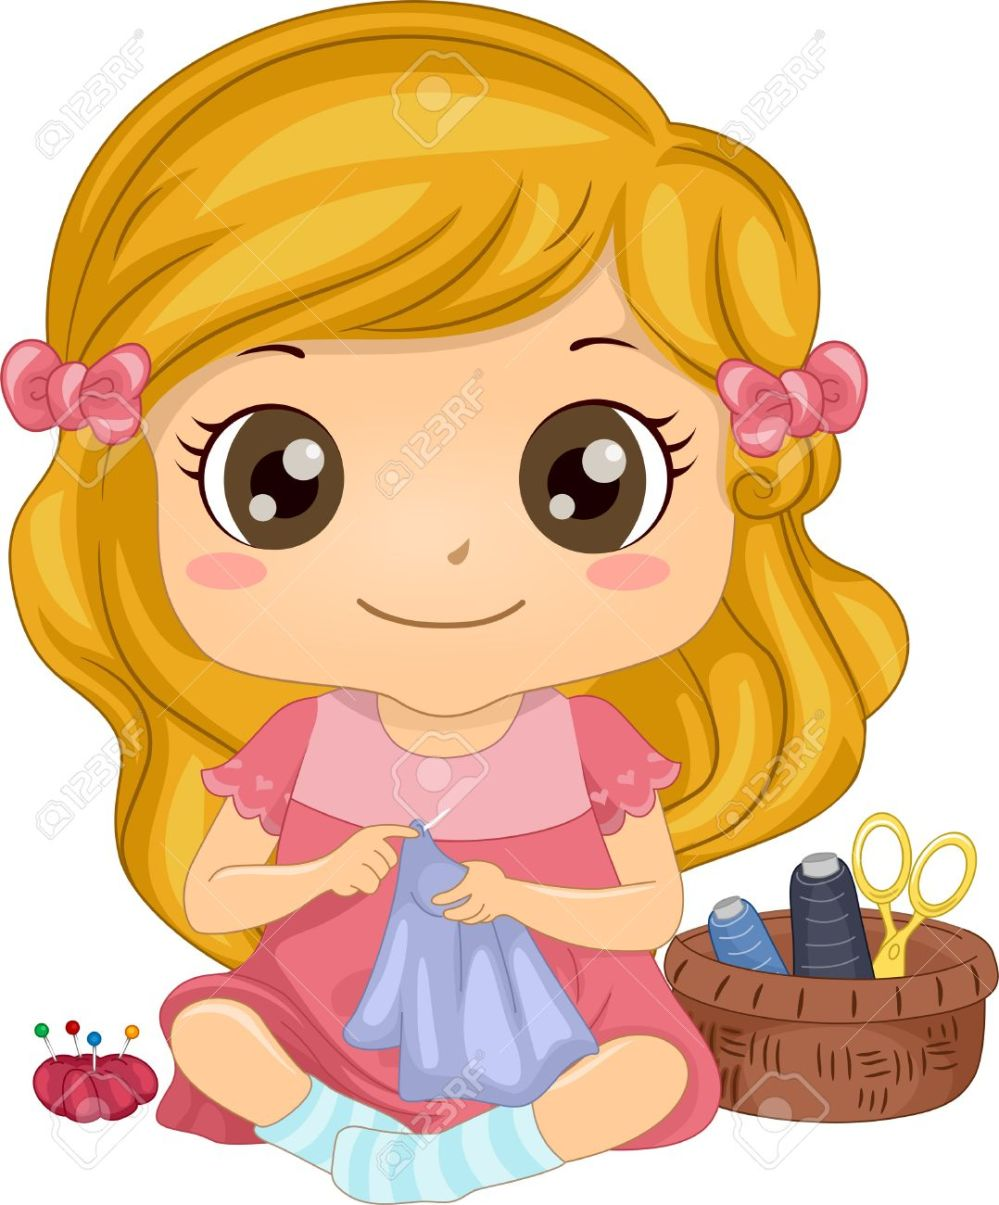 medium resolution of illustration of a cute little girl sewing a piece of fabric stock vector 29570966